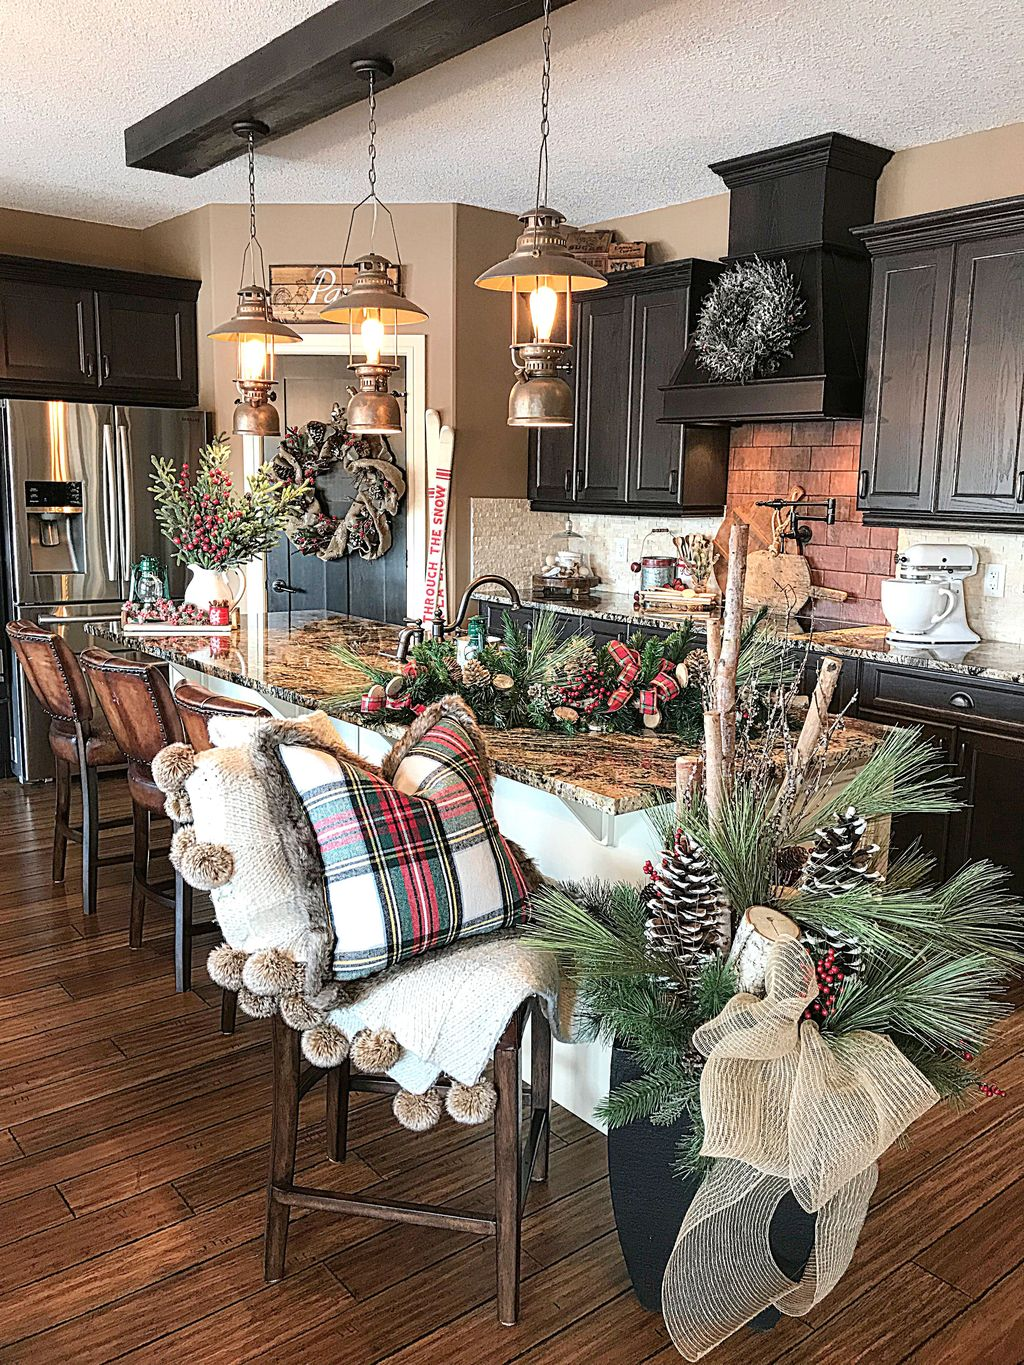 Popular Christmas Decor Ideas For Kitchen Island 31